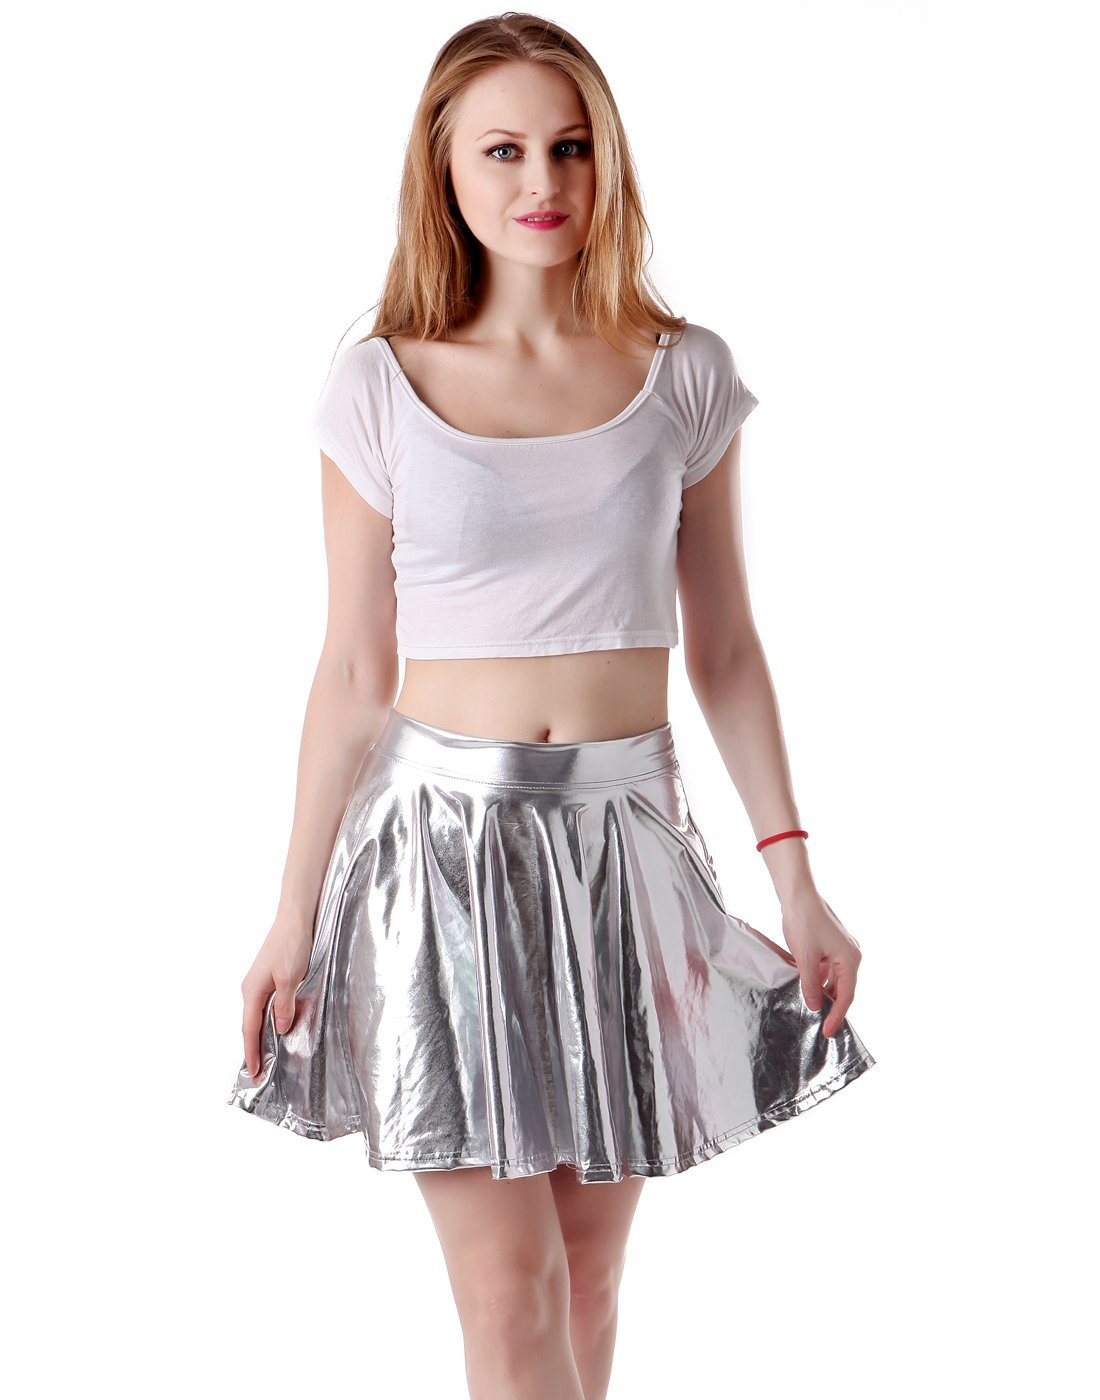 HDE Women's Casual Fashion Flared Pleated A-Line Circle Skater Skirt (Silver, XL)